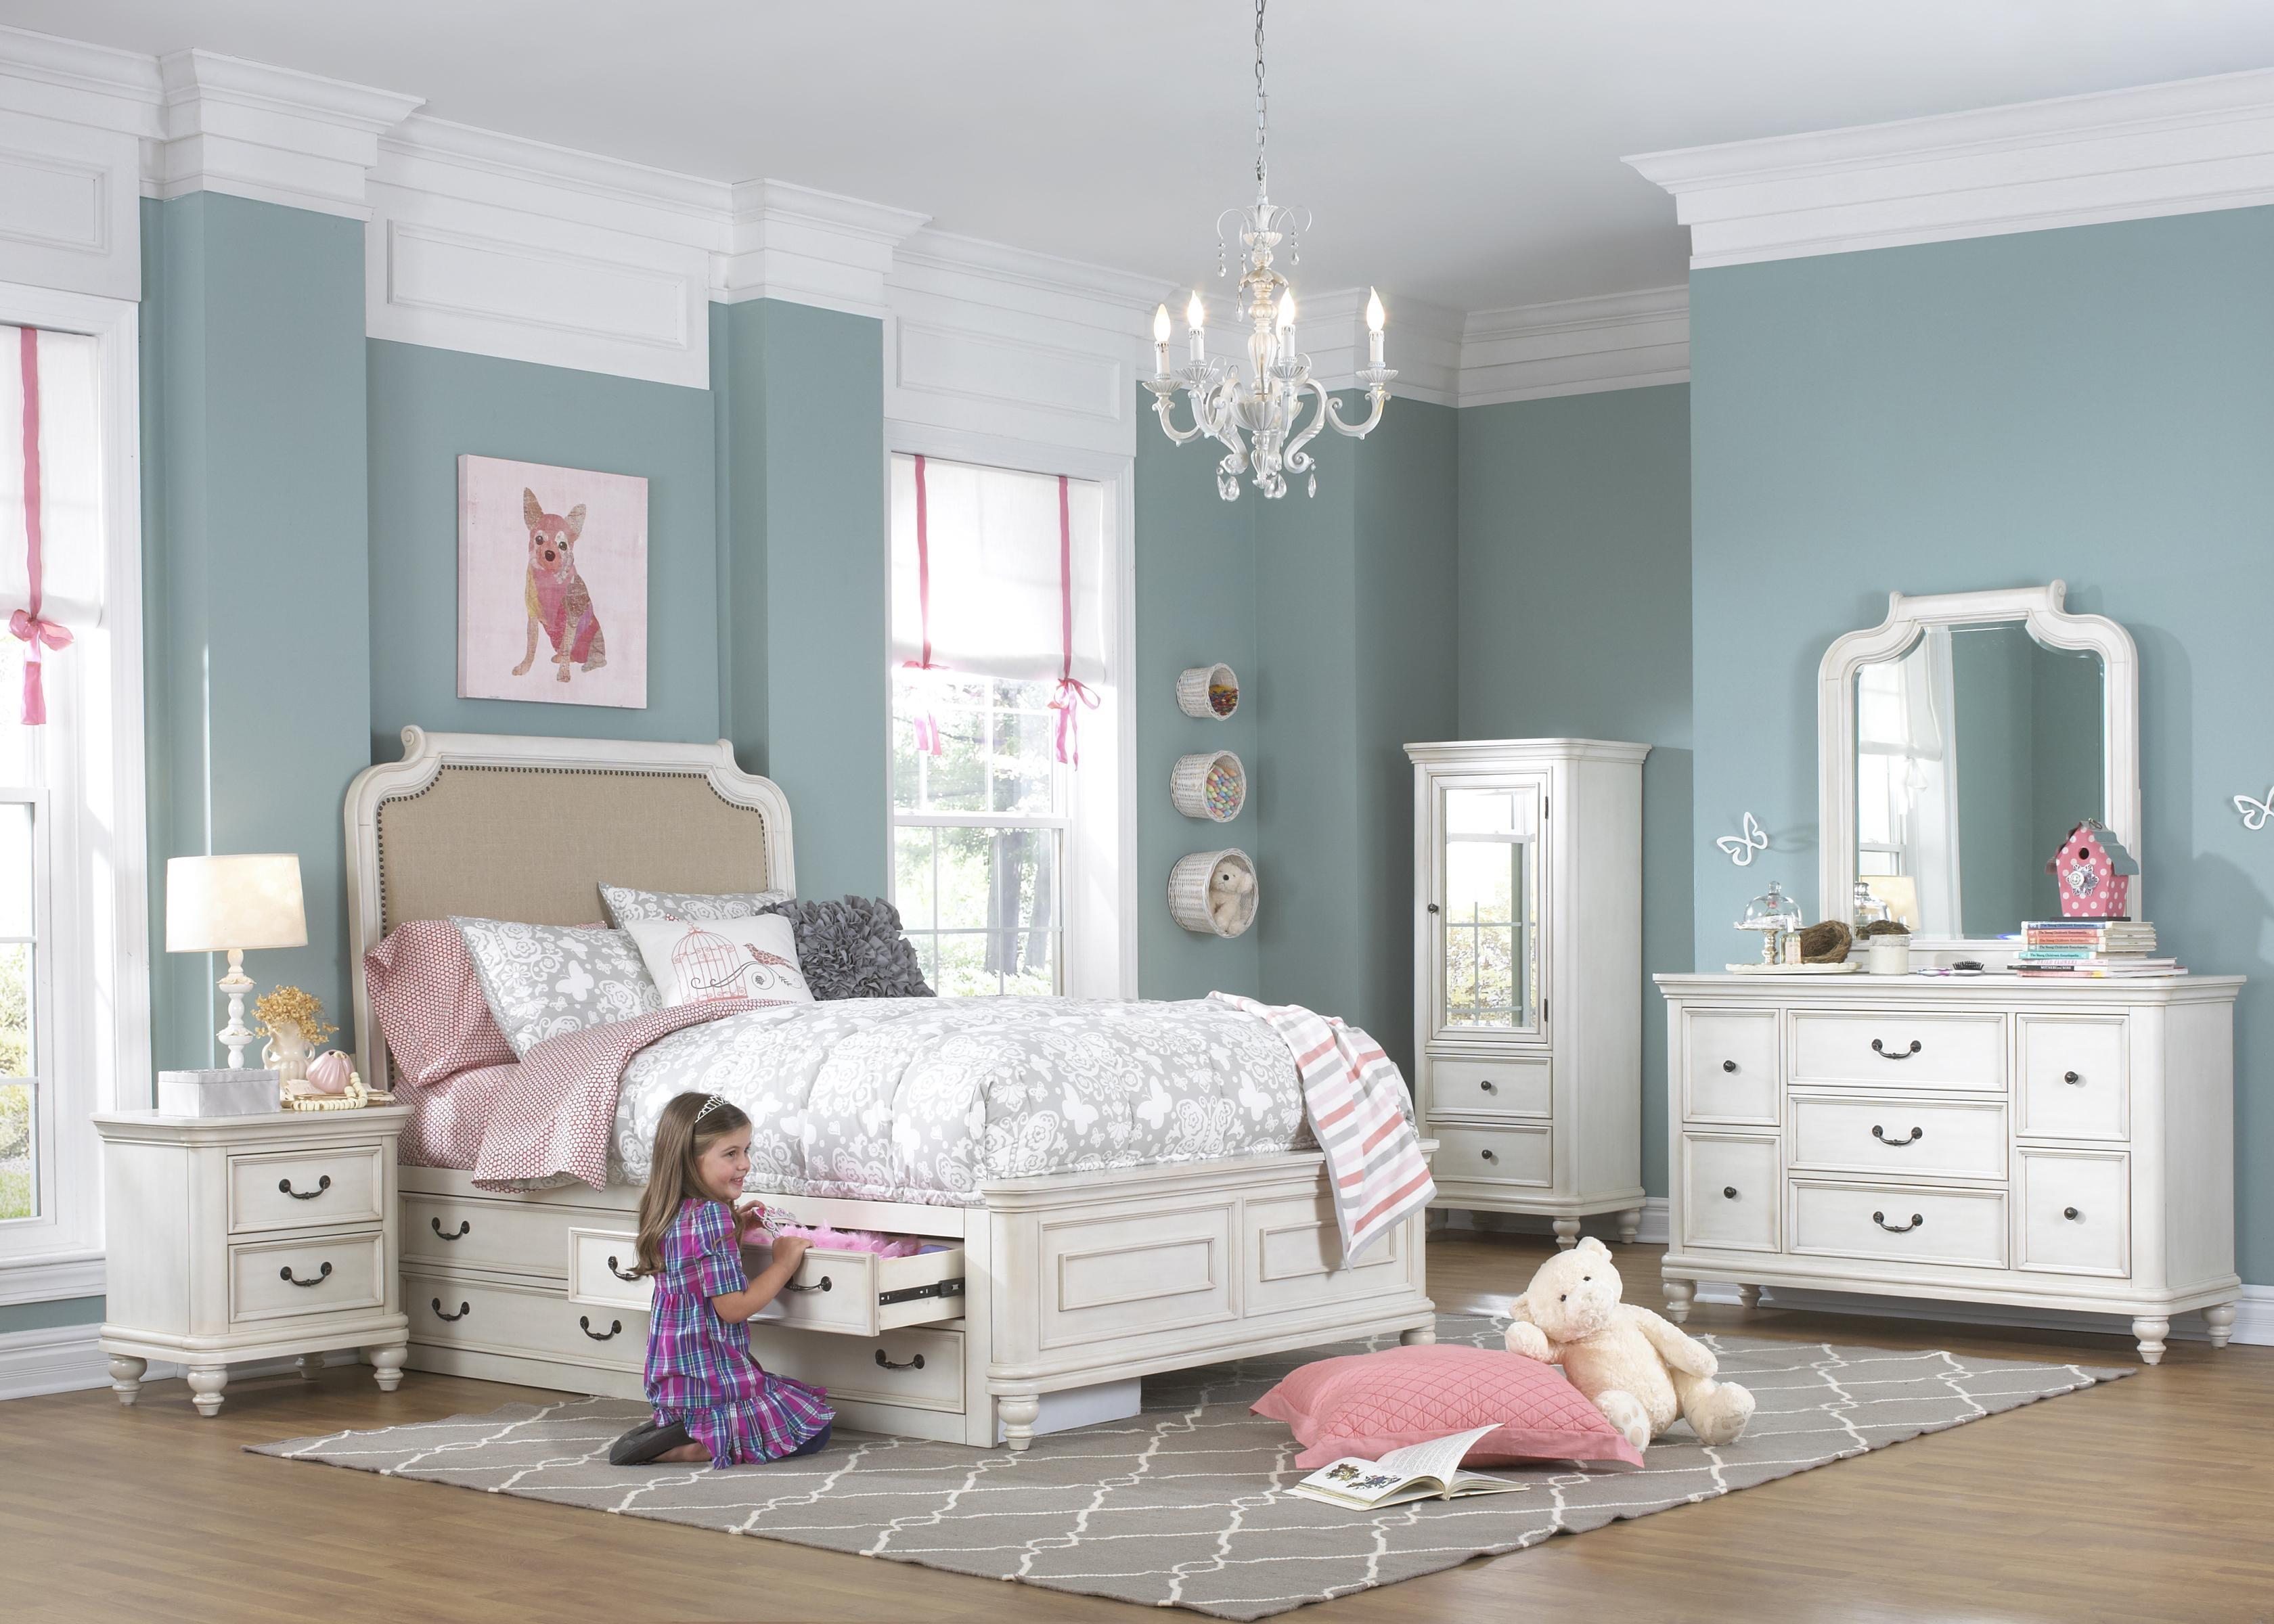 Kidz Gear Everly Full Bedroom Group - Item Number: 8890 F Bedroom Group 2